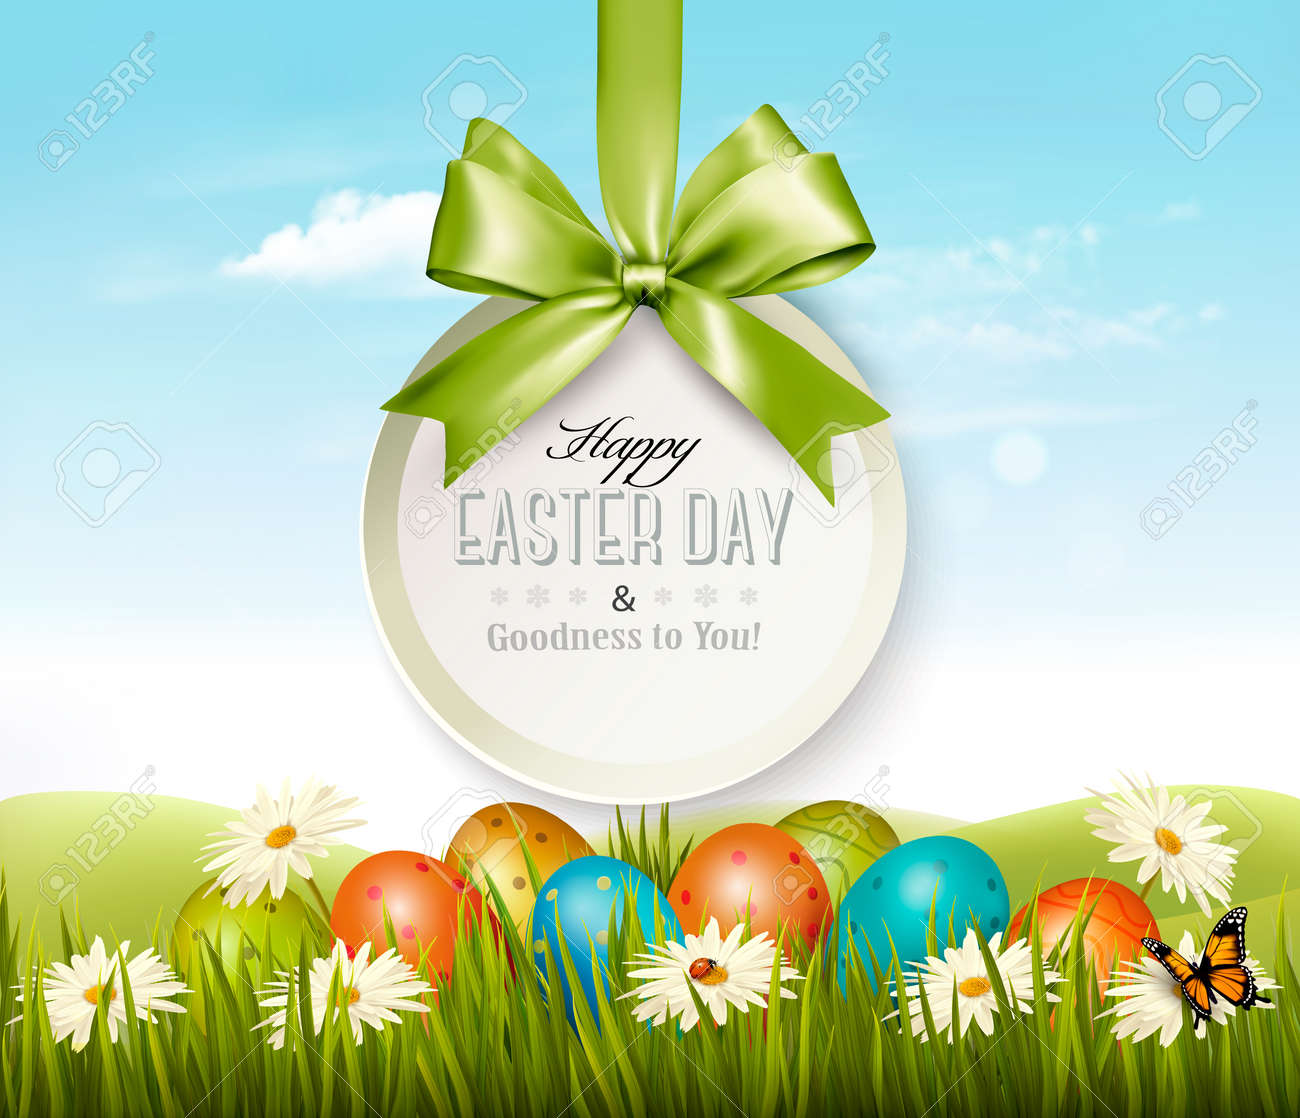 Spring Easter Background With Eggs In Grass With Flowers Design